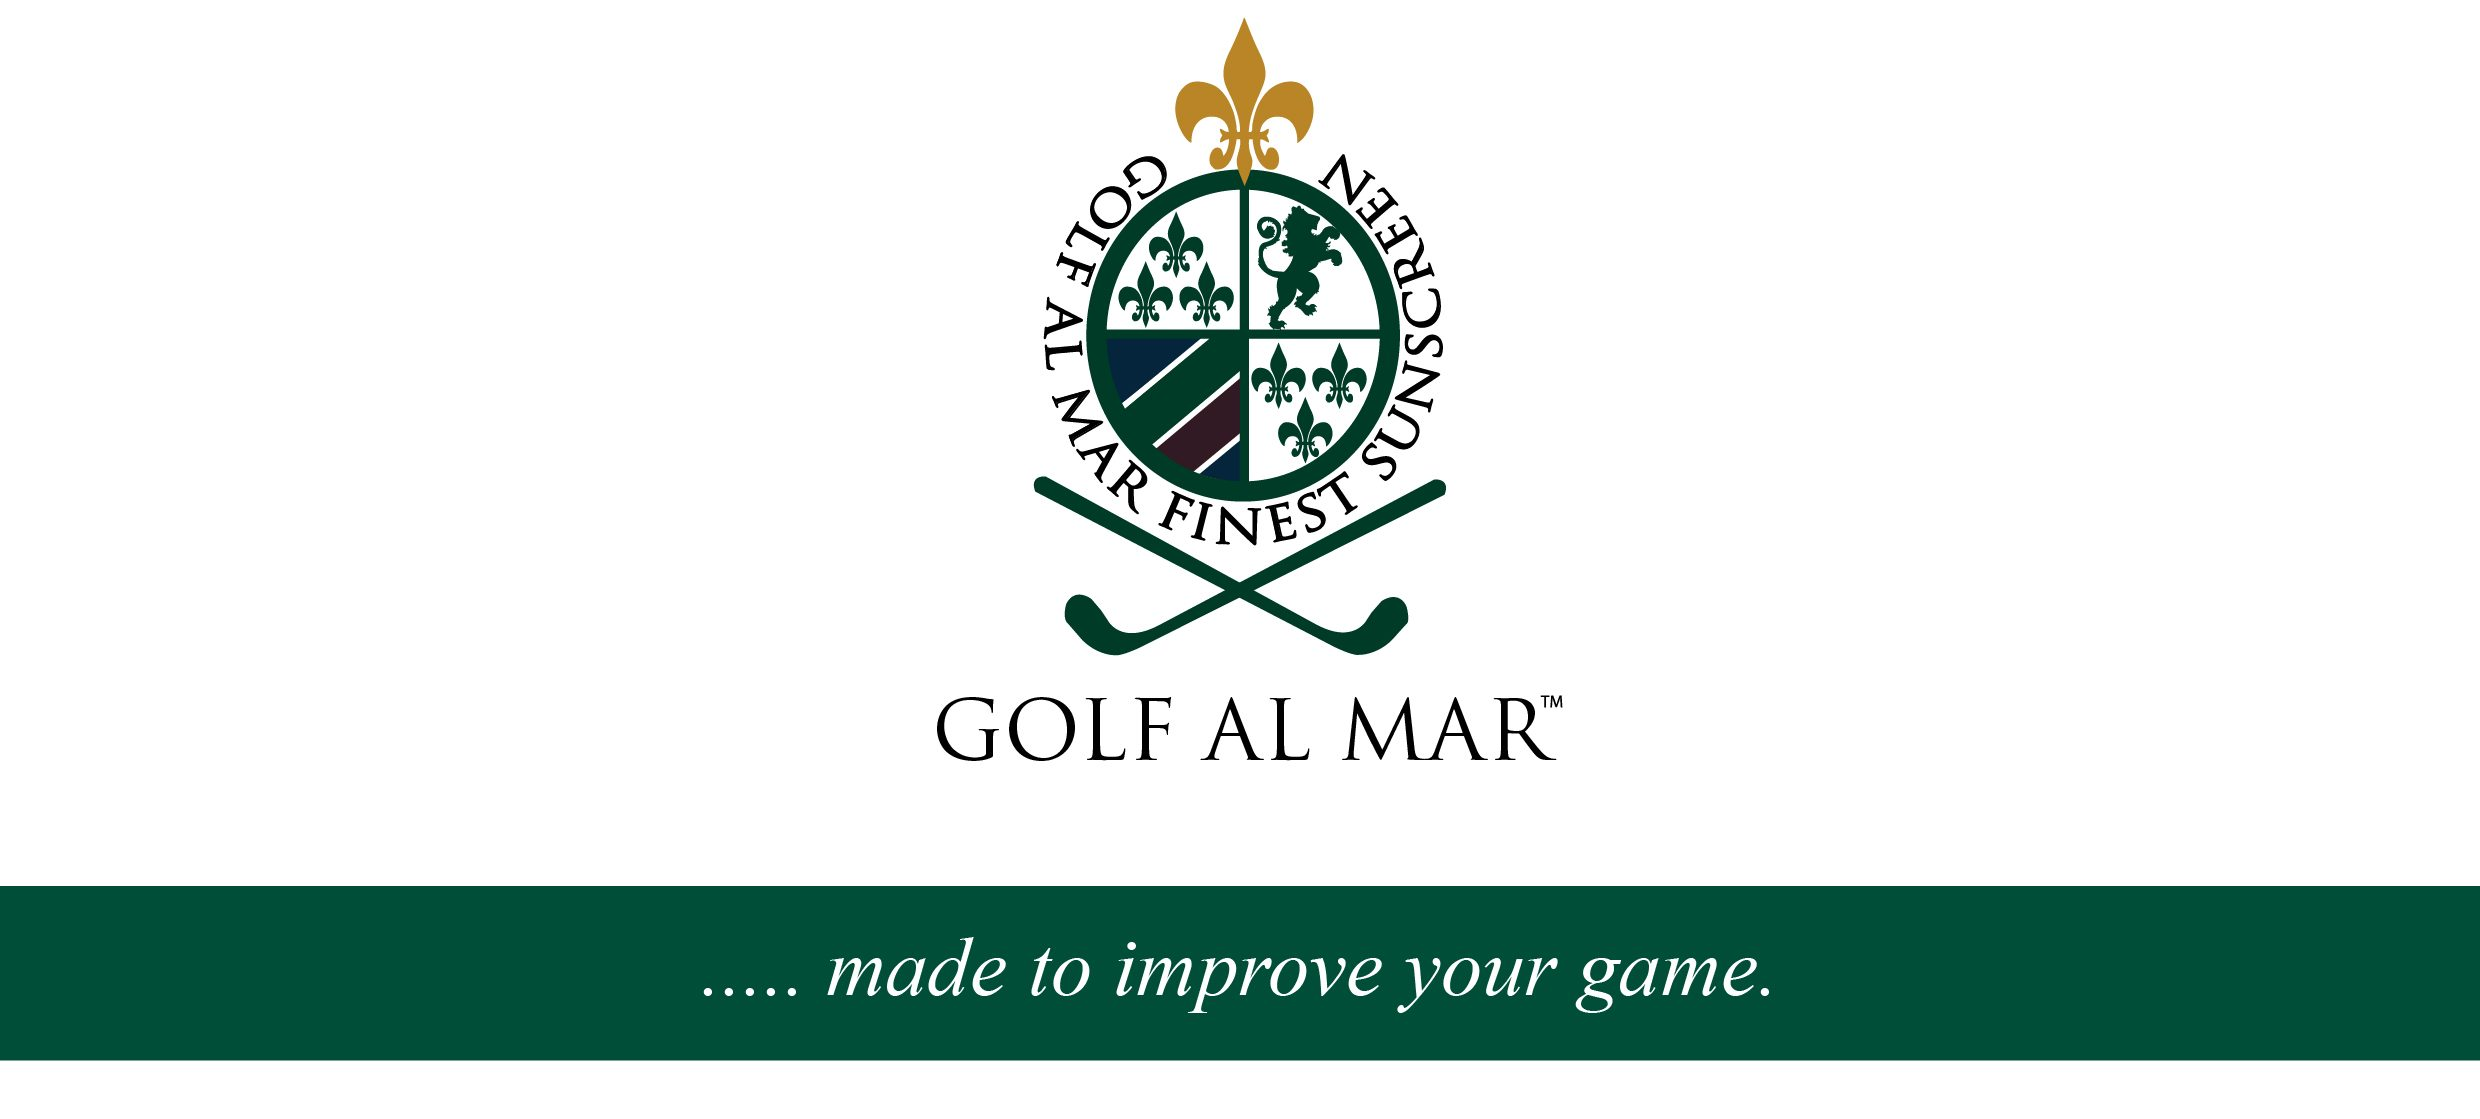 GOLF AL MAR ……made to improve your game